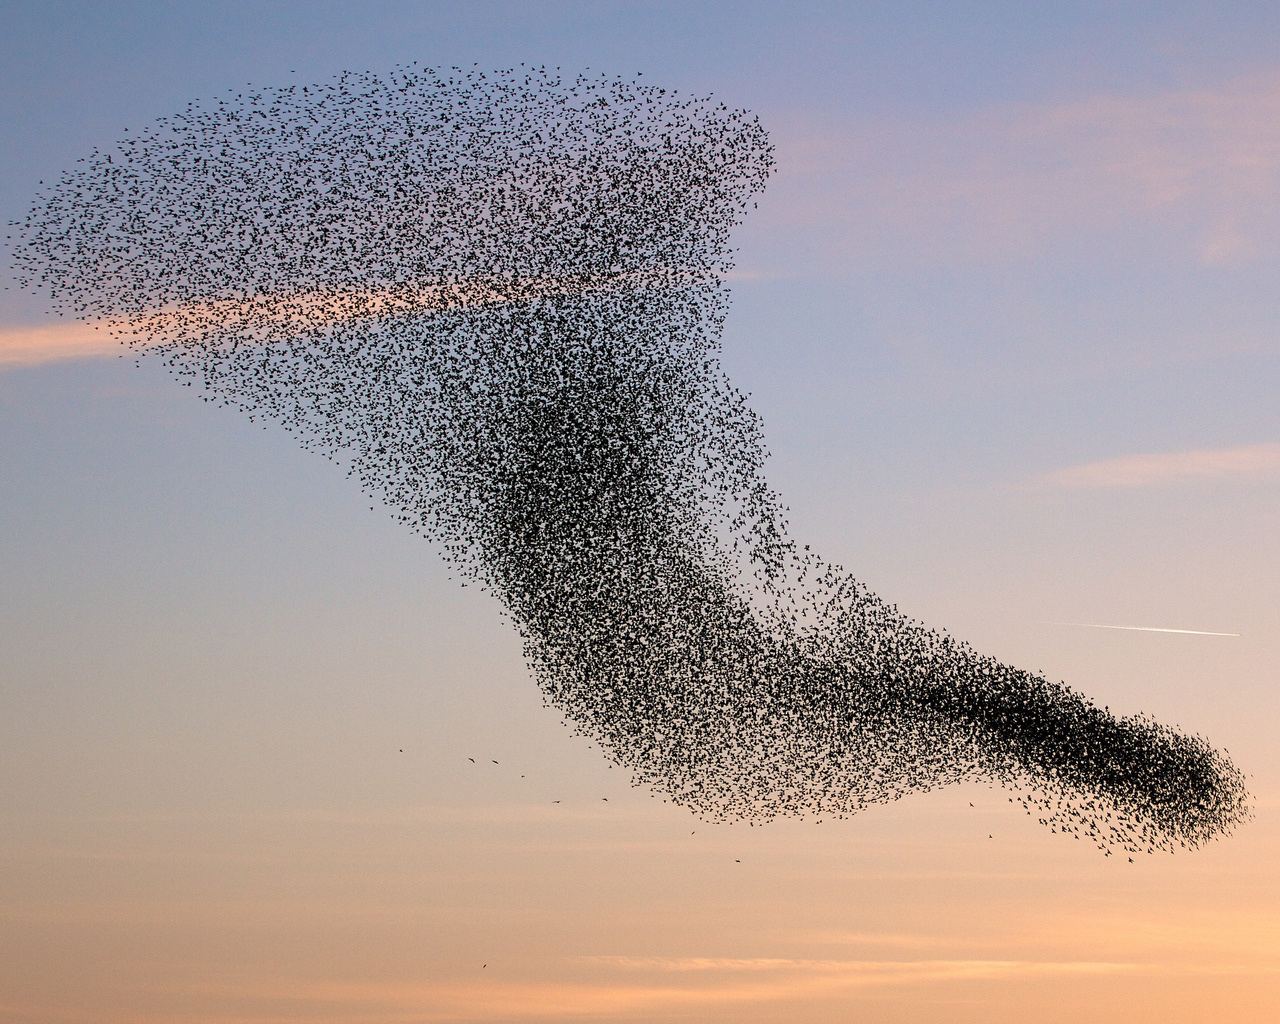 birds-flock-swarm-the-vortex_1280x1024_sc